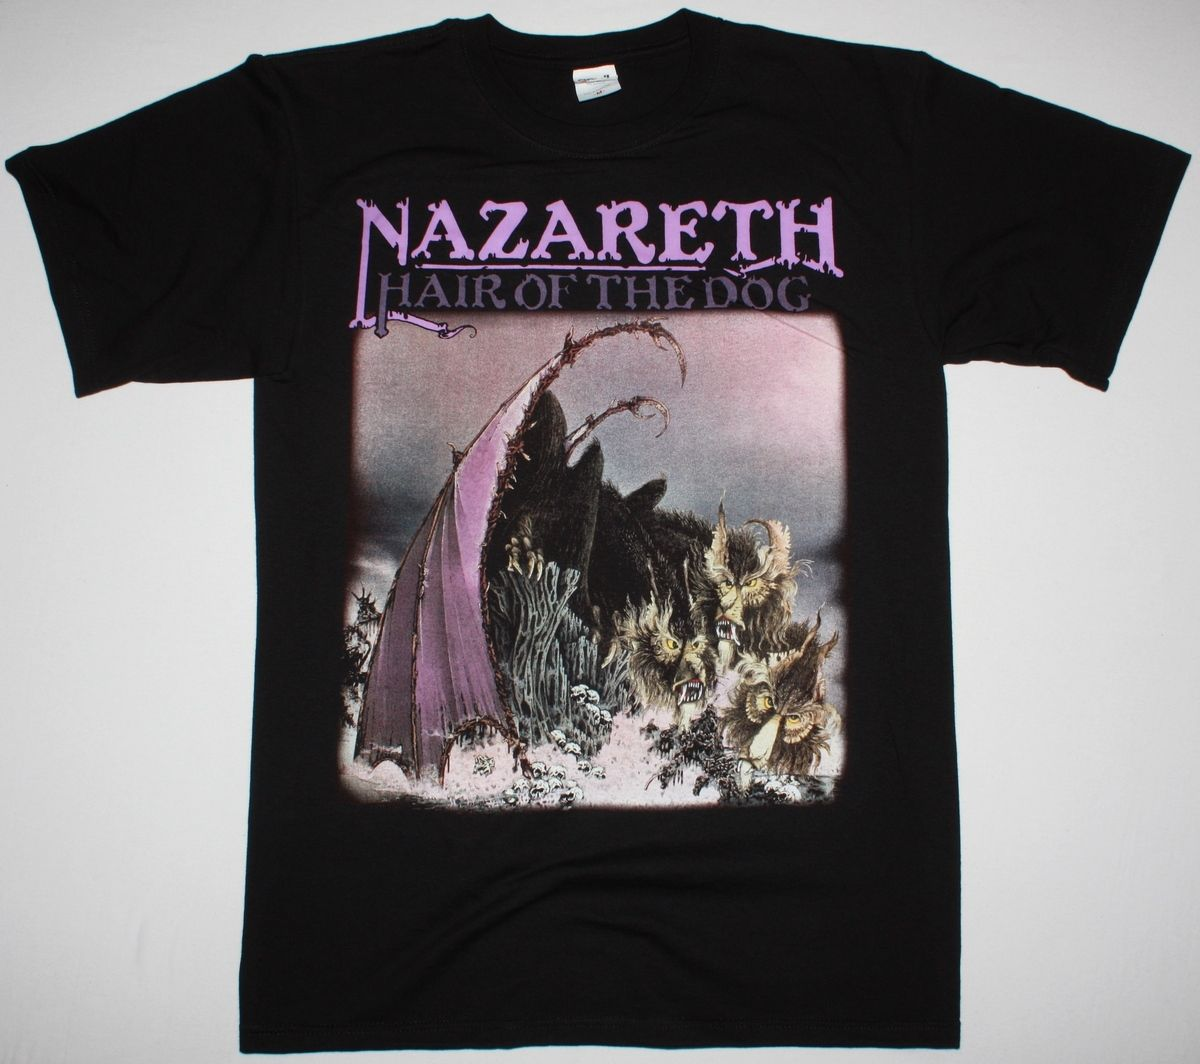 NAZARETH HAIR OF THE DOG HARD ROCK DEEP PURPLE URIAH HEEP NEW BLACK T-SHIRT Different Colours High Quality 100%